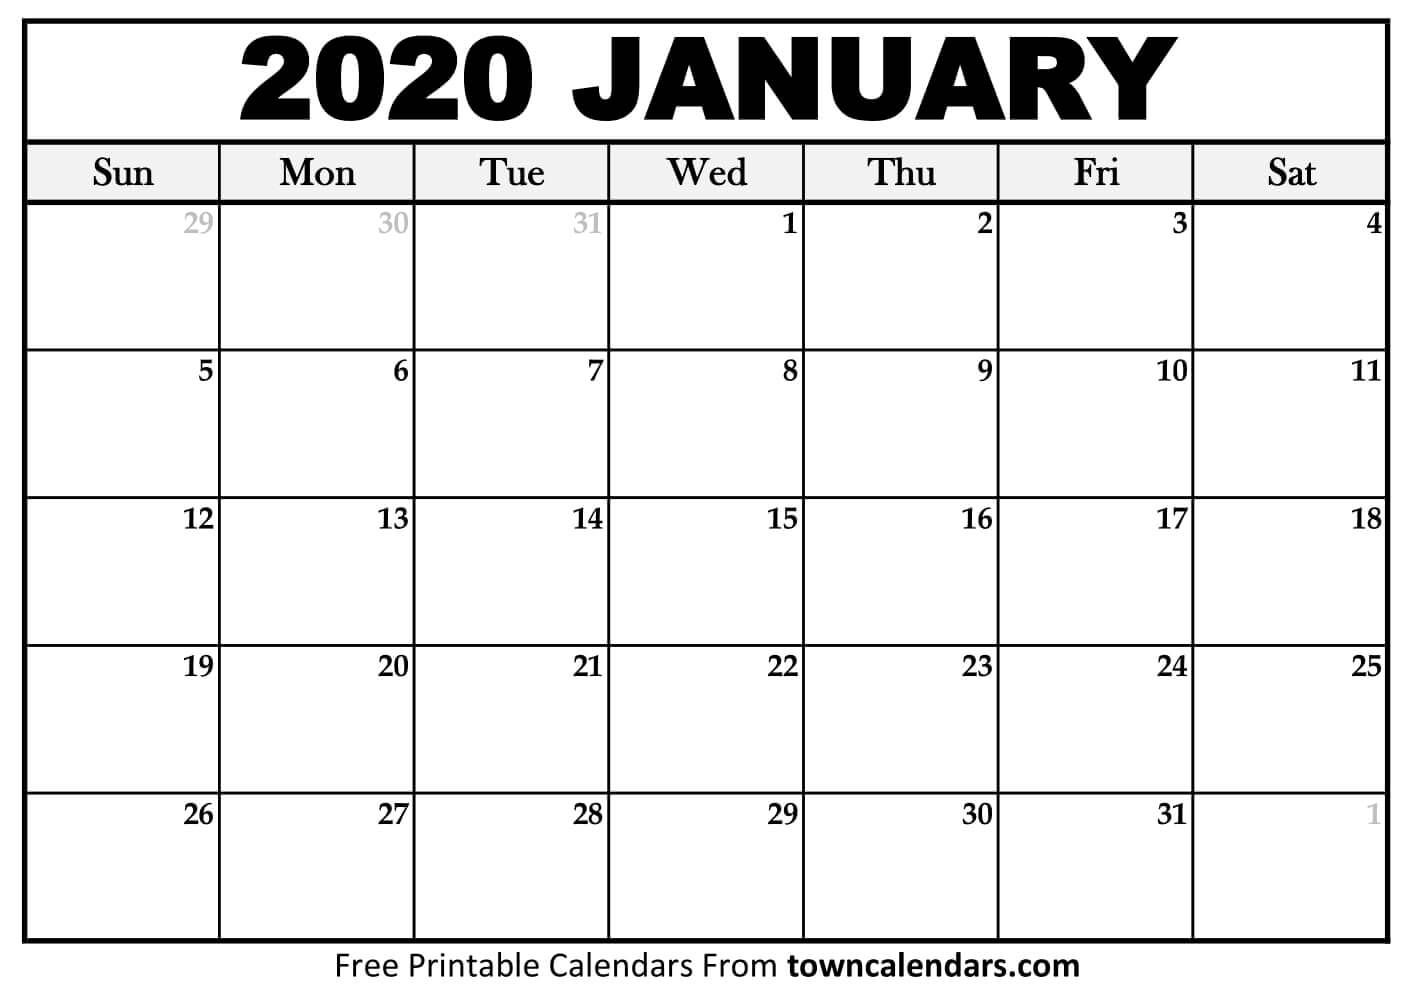 2020 Calendar Printable  Towncalendars within 123 Calendars January 2020